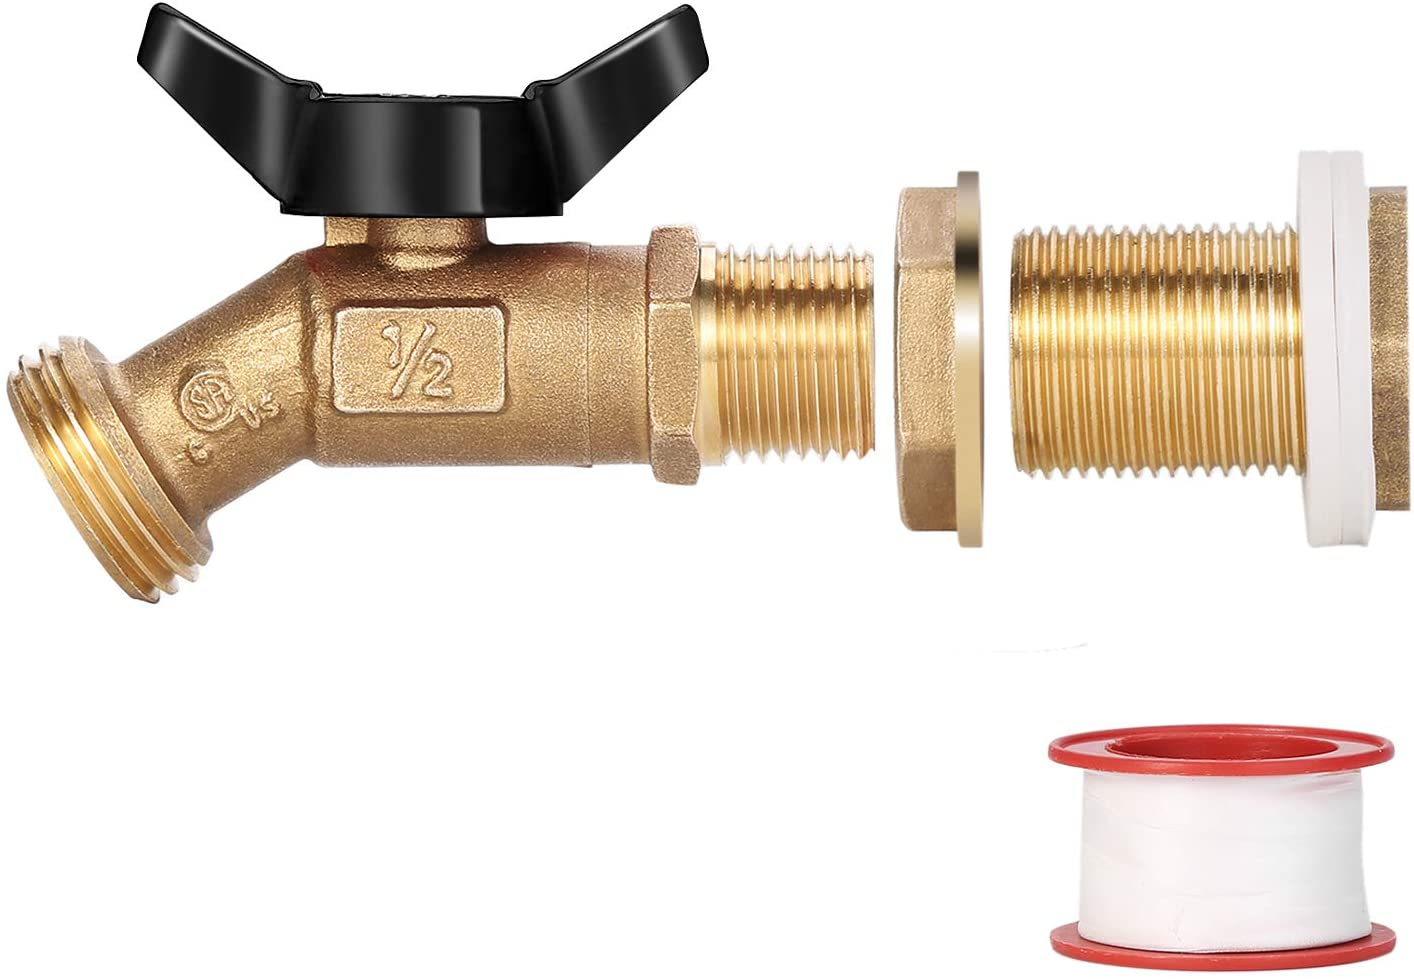 WADEO Brass Rain Barrel Spigot, Rain Barrel Quarter Turn Ball Valve Spigot with Bulkhead Fitting